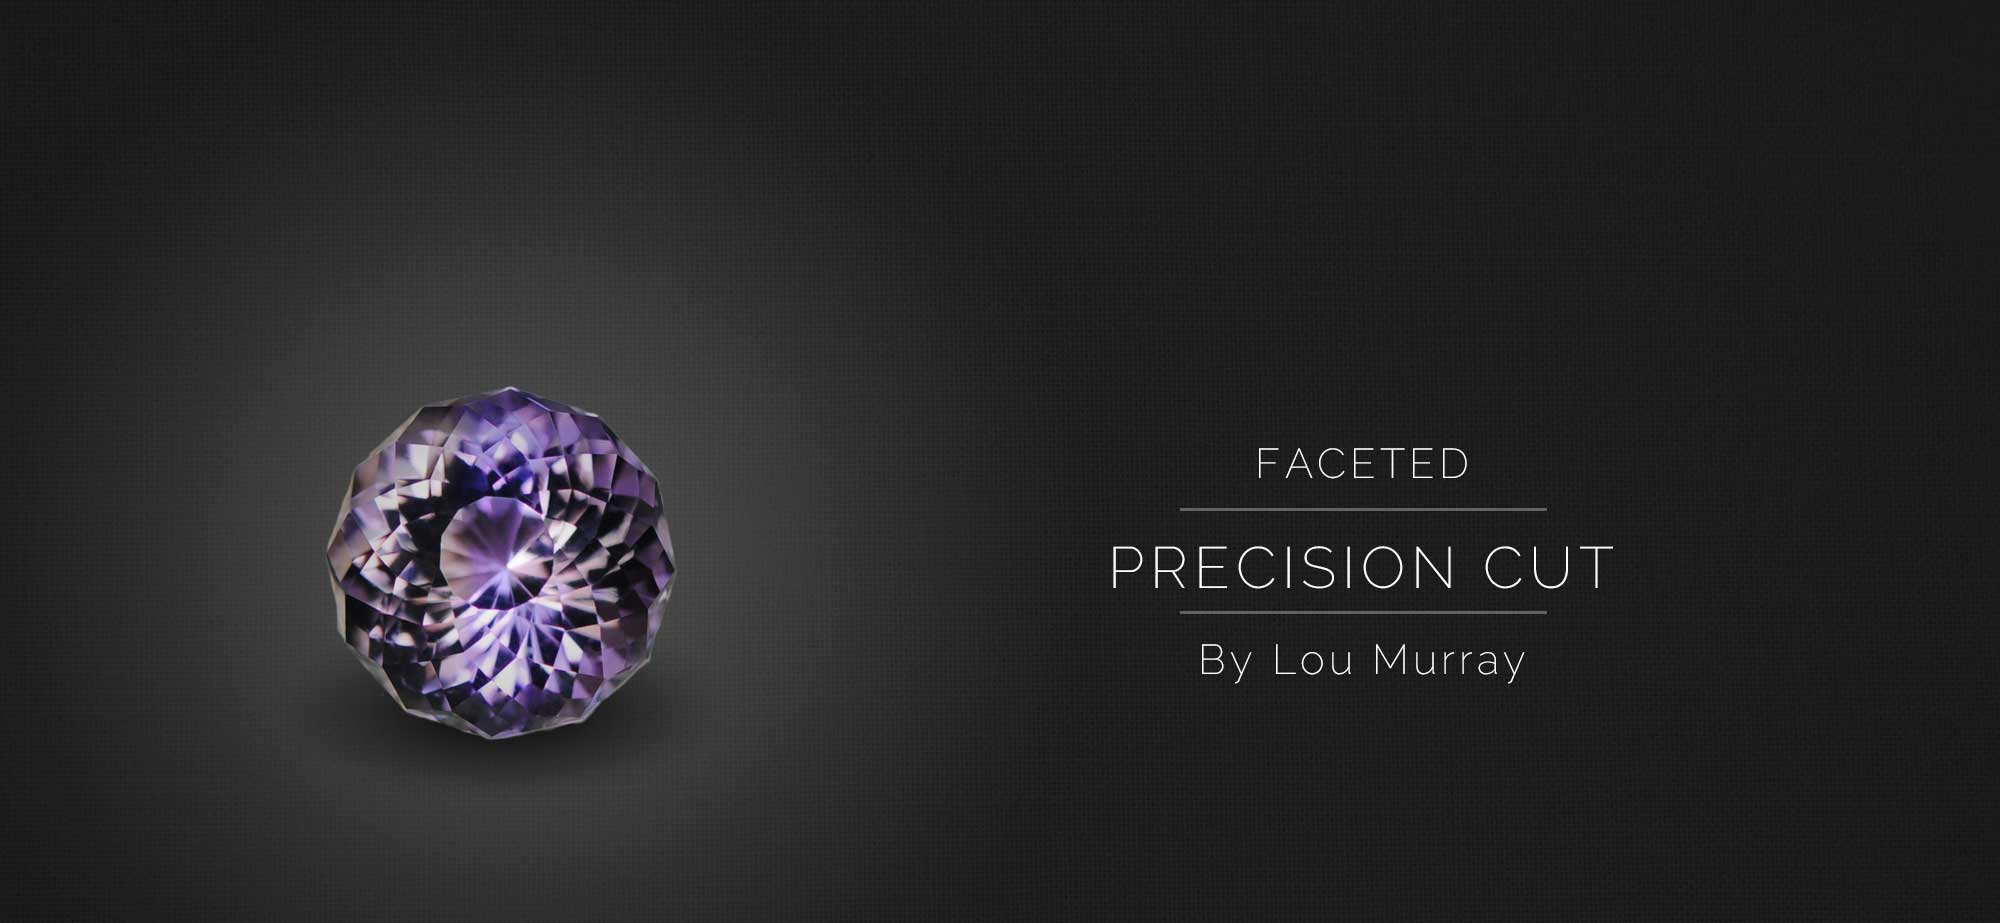 Faceted Precision cut by Lou Murray